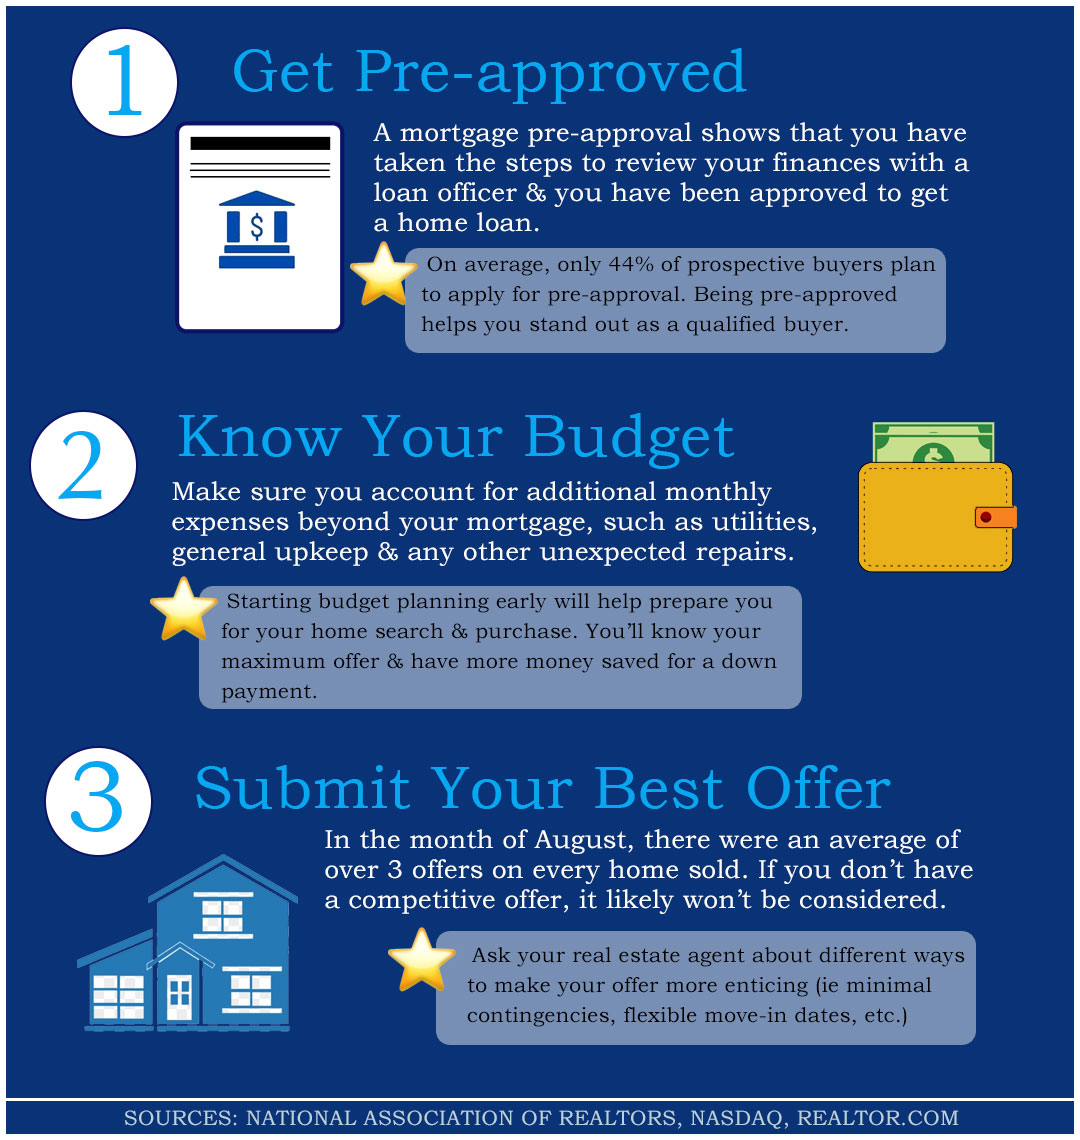 3 Tips to prepare for a bidding war